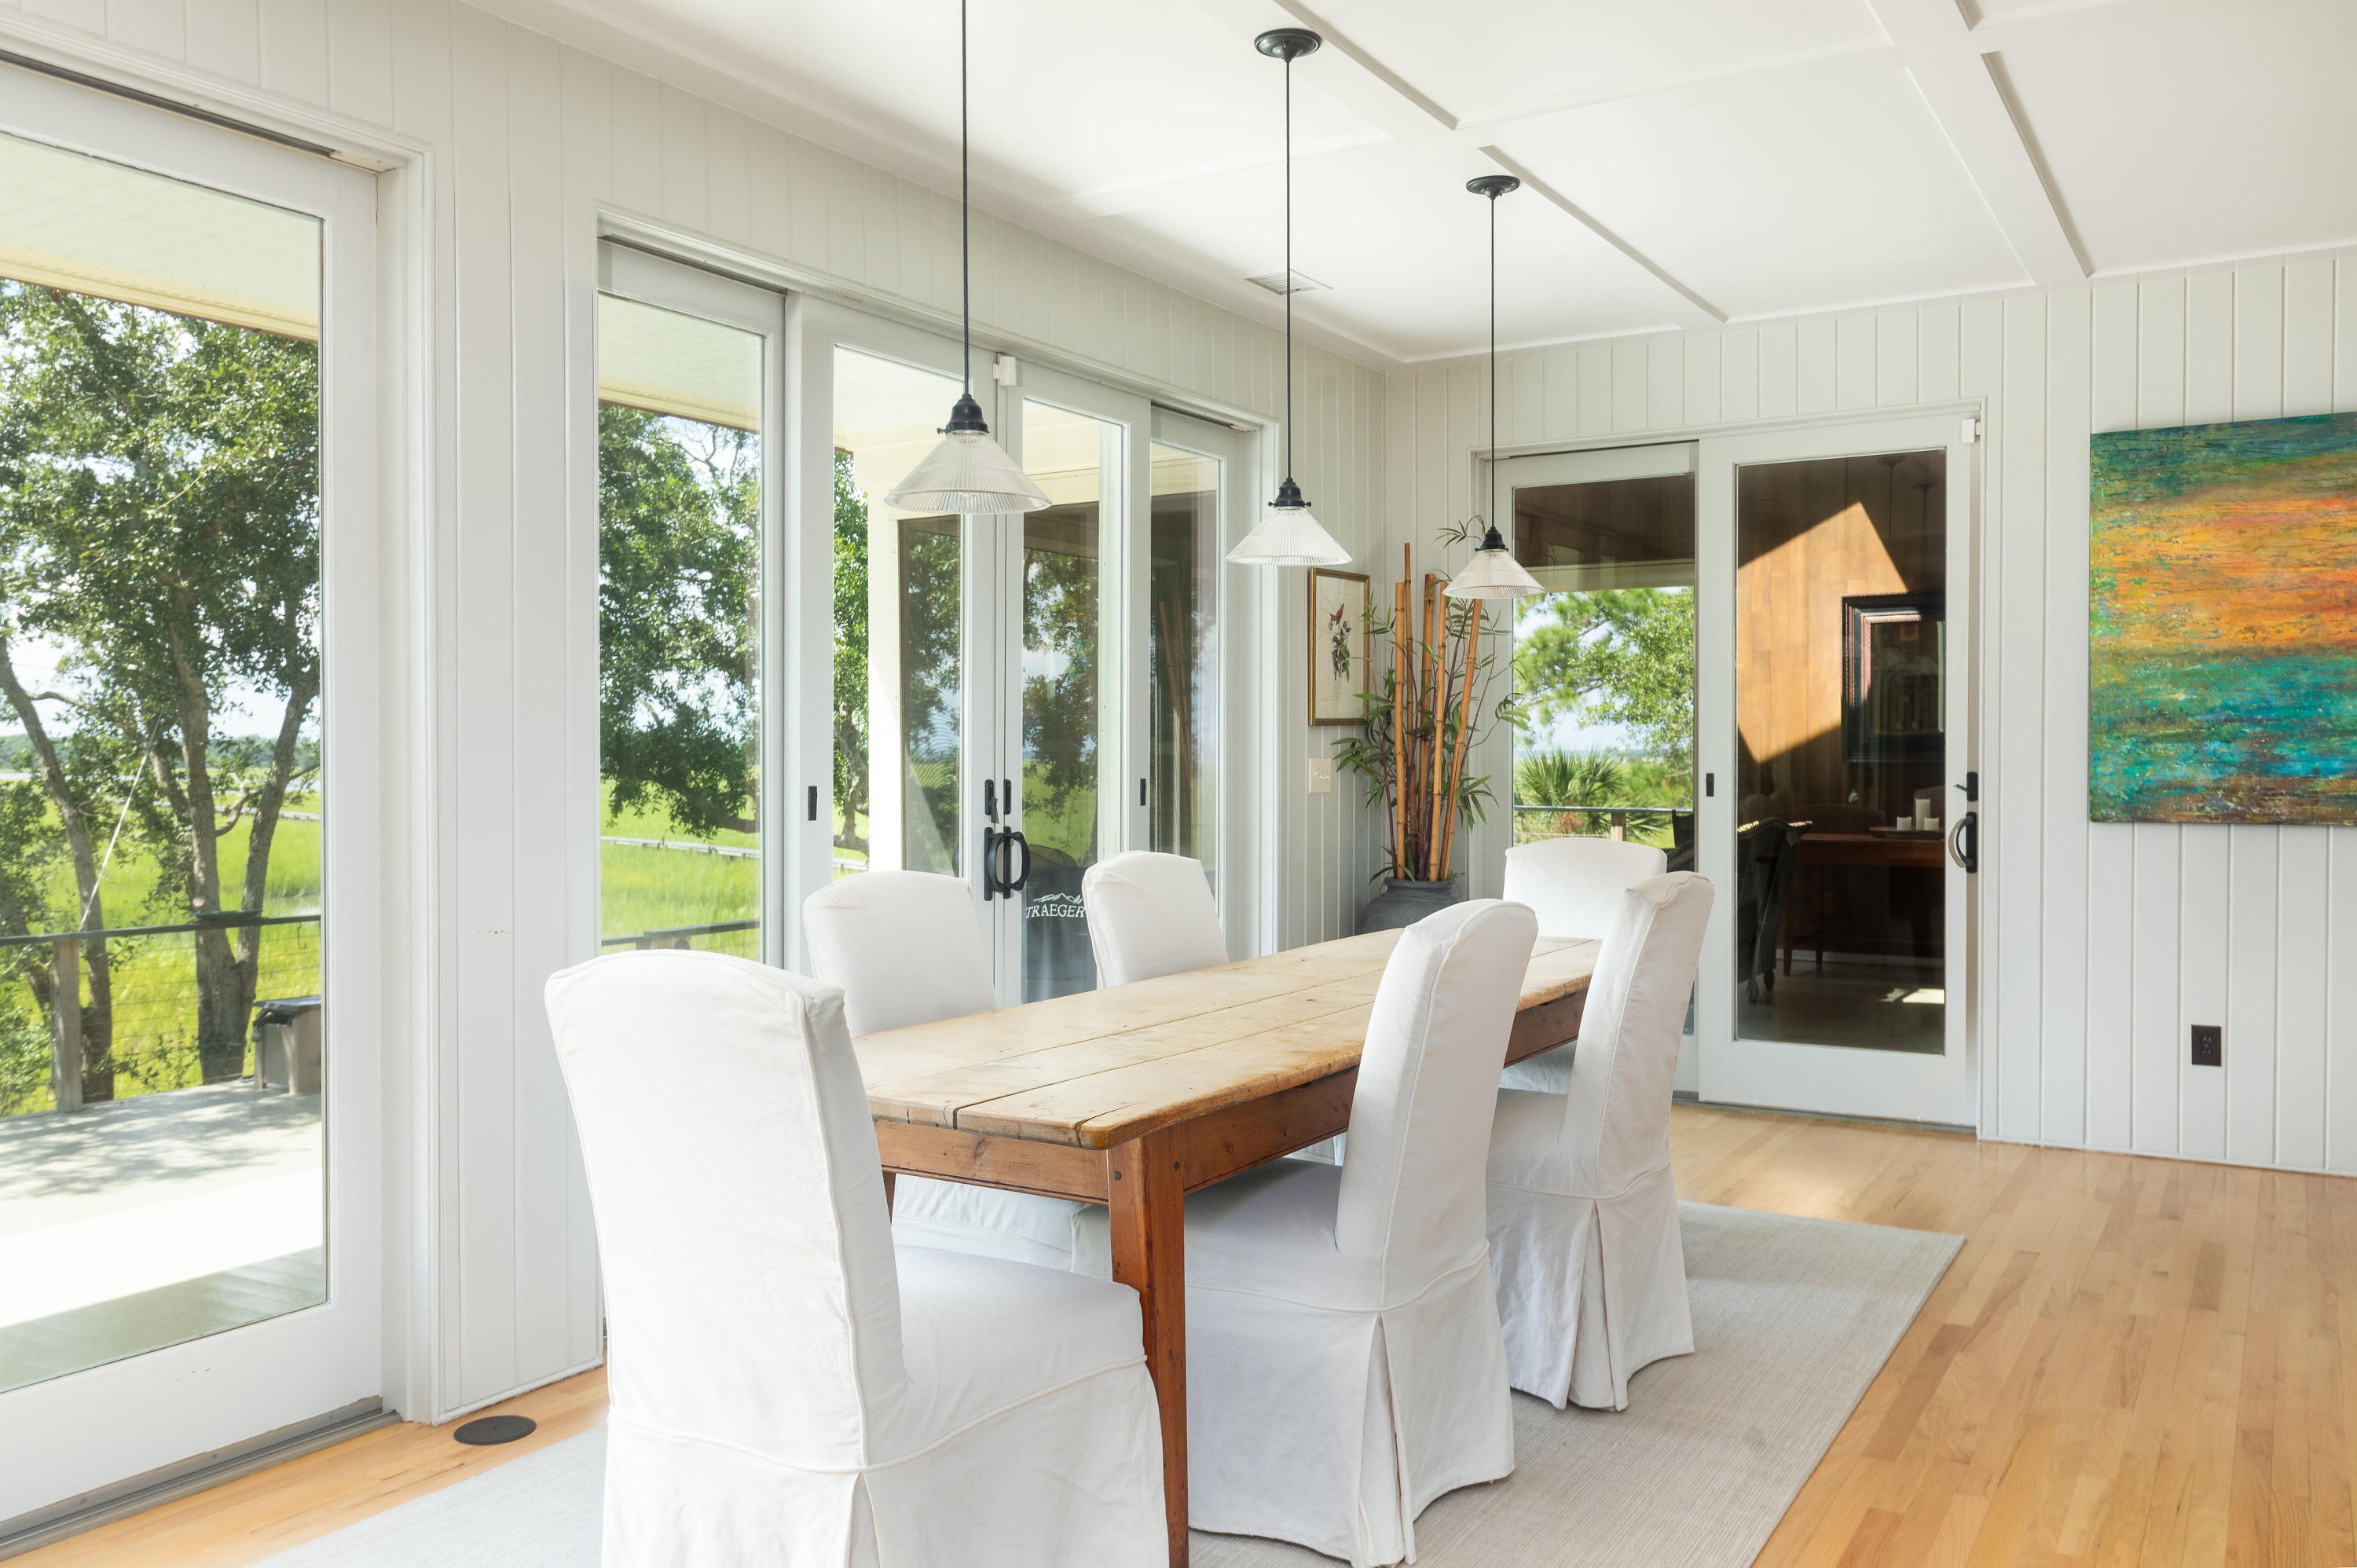 Wild Dunes Homes For Sale - 16 Seagrass, Isle of Palms, SC - 0